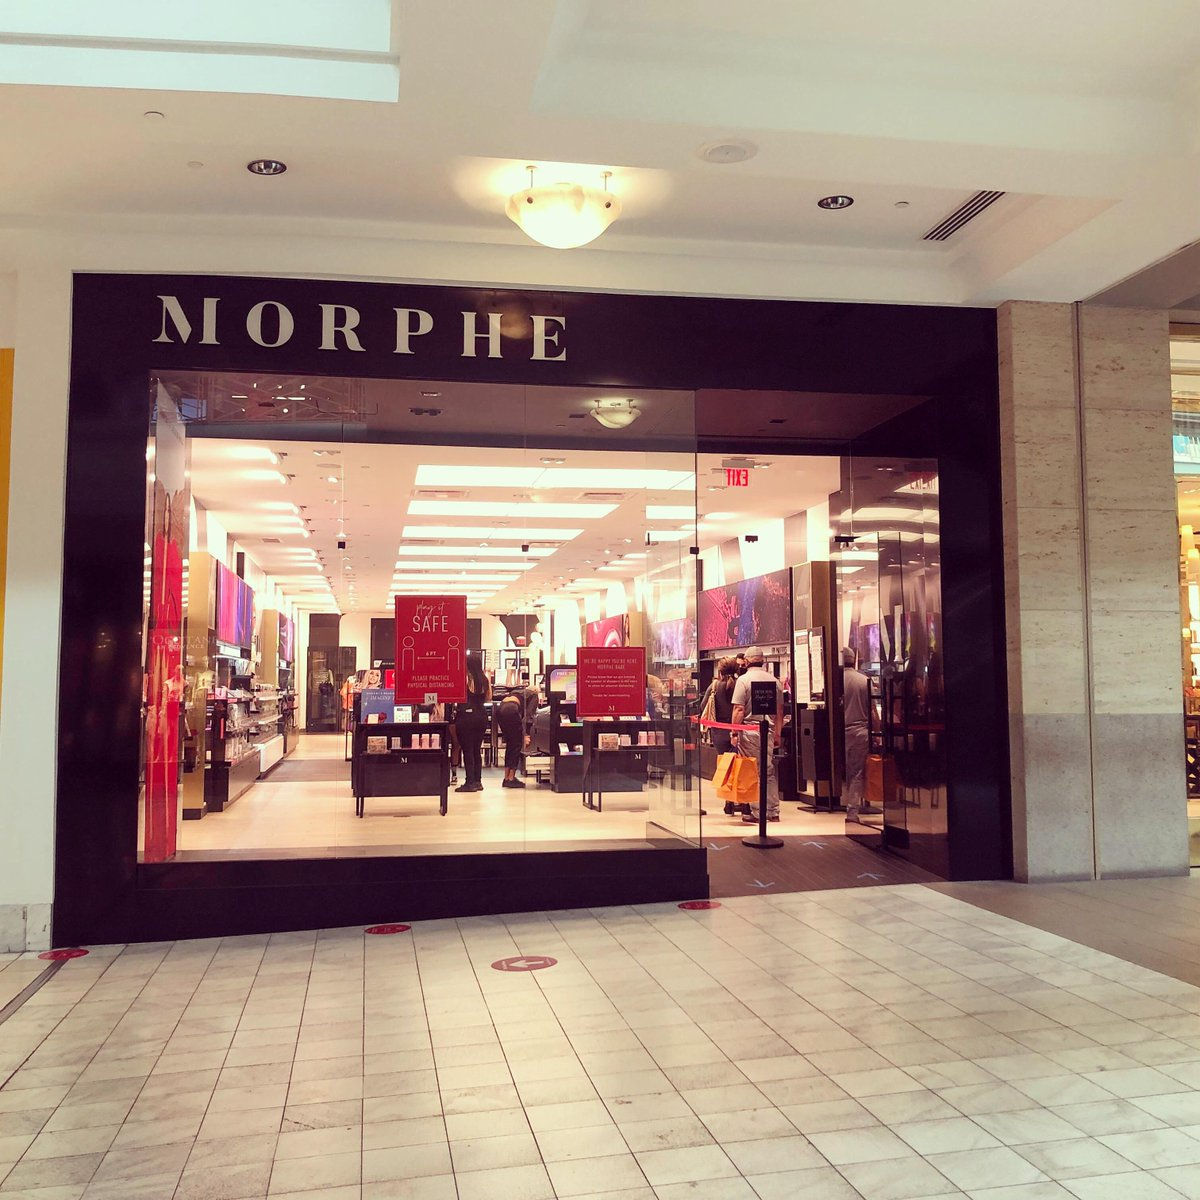 #MorpheBabes the wait is over. @MorpheBrushes has reopened with  safety measures in place.pic.twitter.com/bBCD9GOPCK